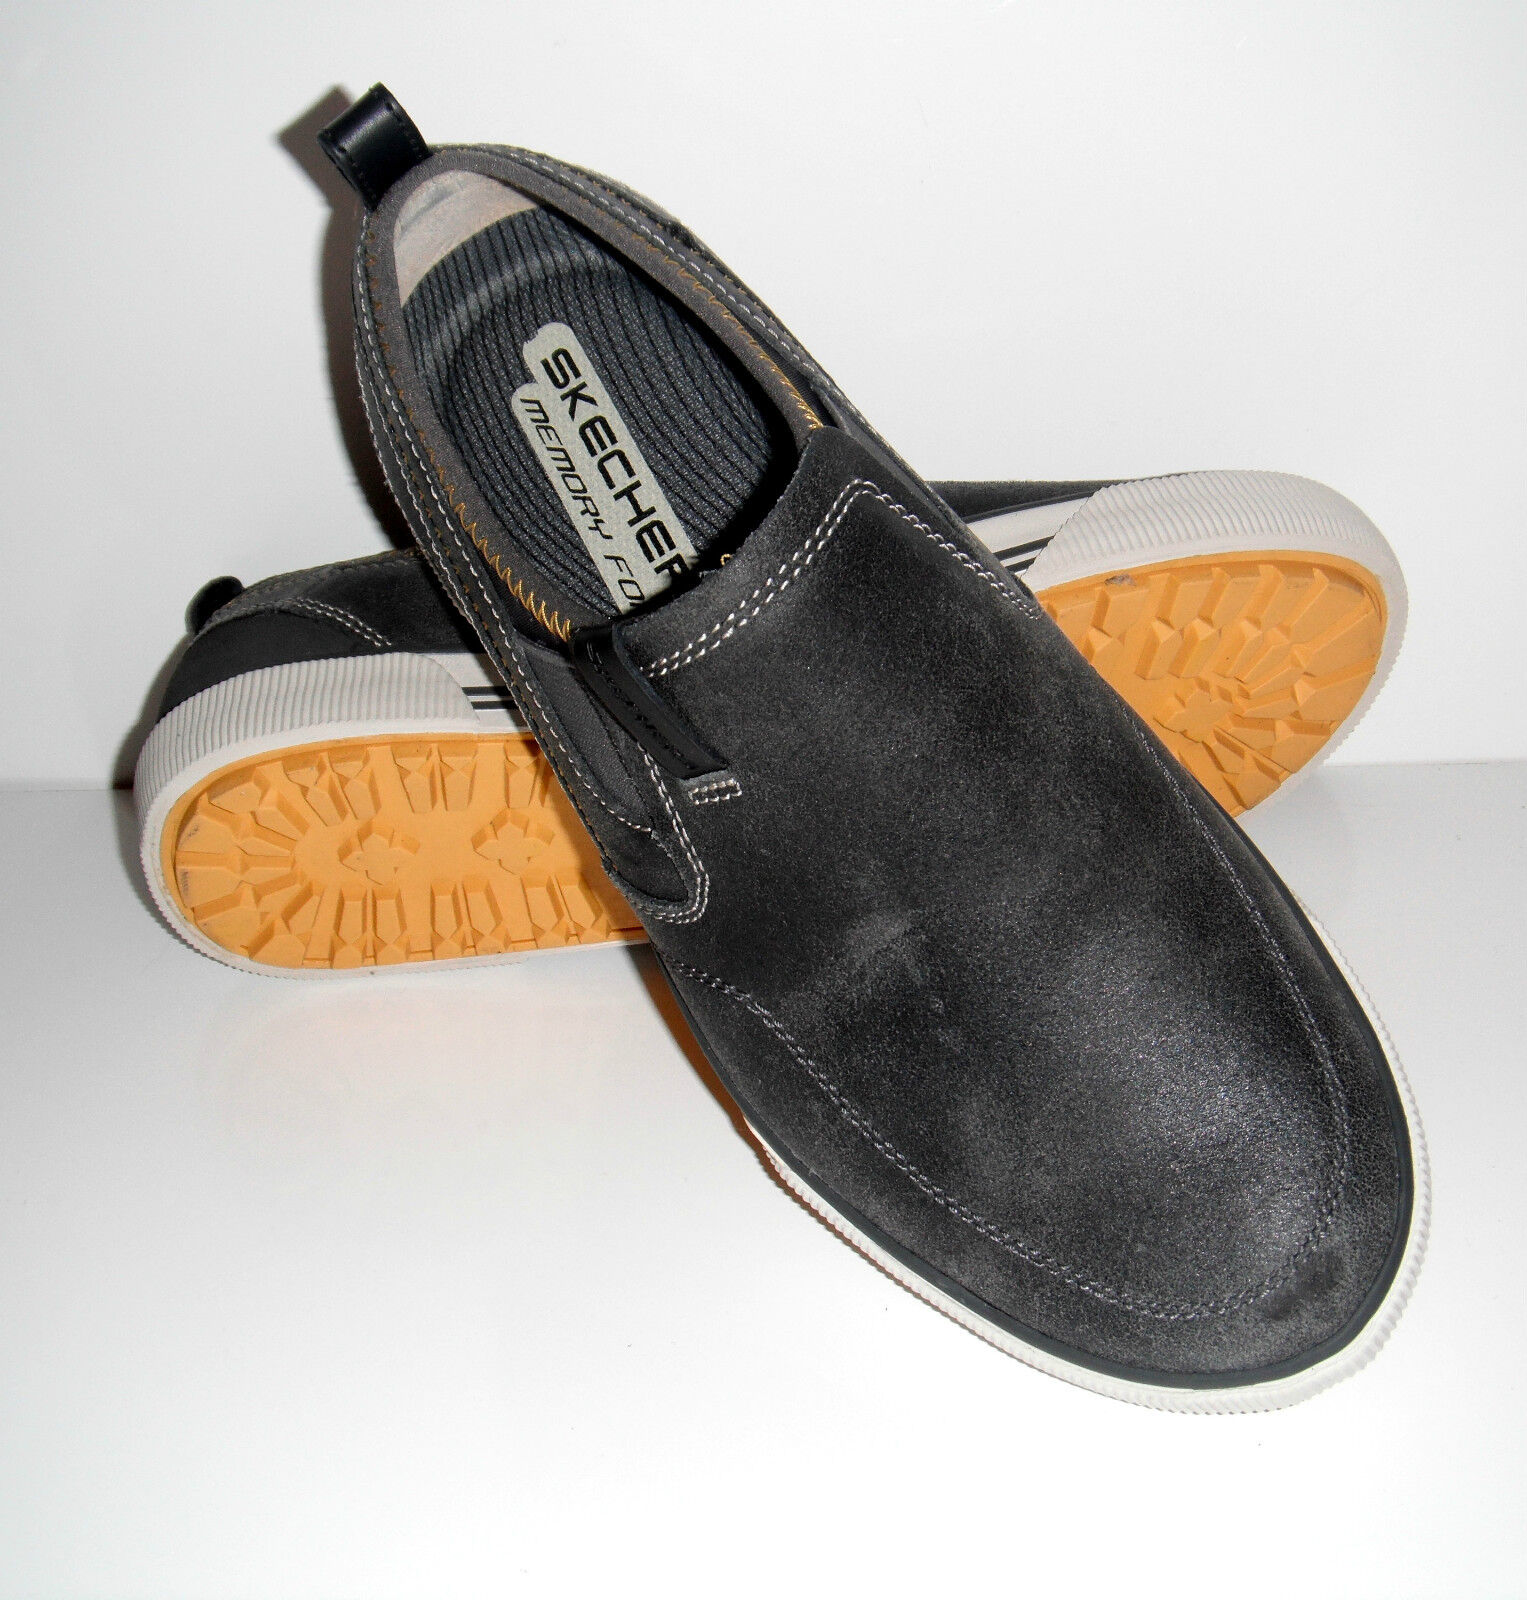 New Skechers Uomo Talon Charcoal Slip On Distressed Pelle Loafers Shoes sz 8